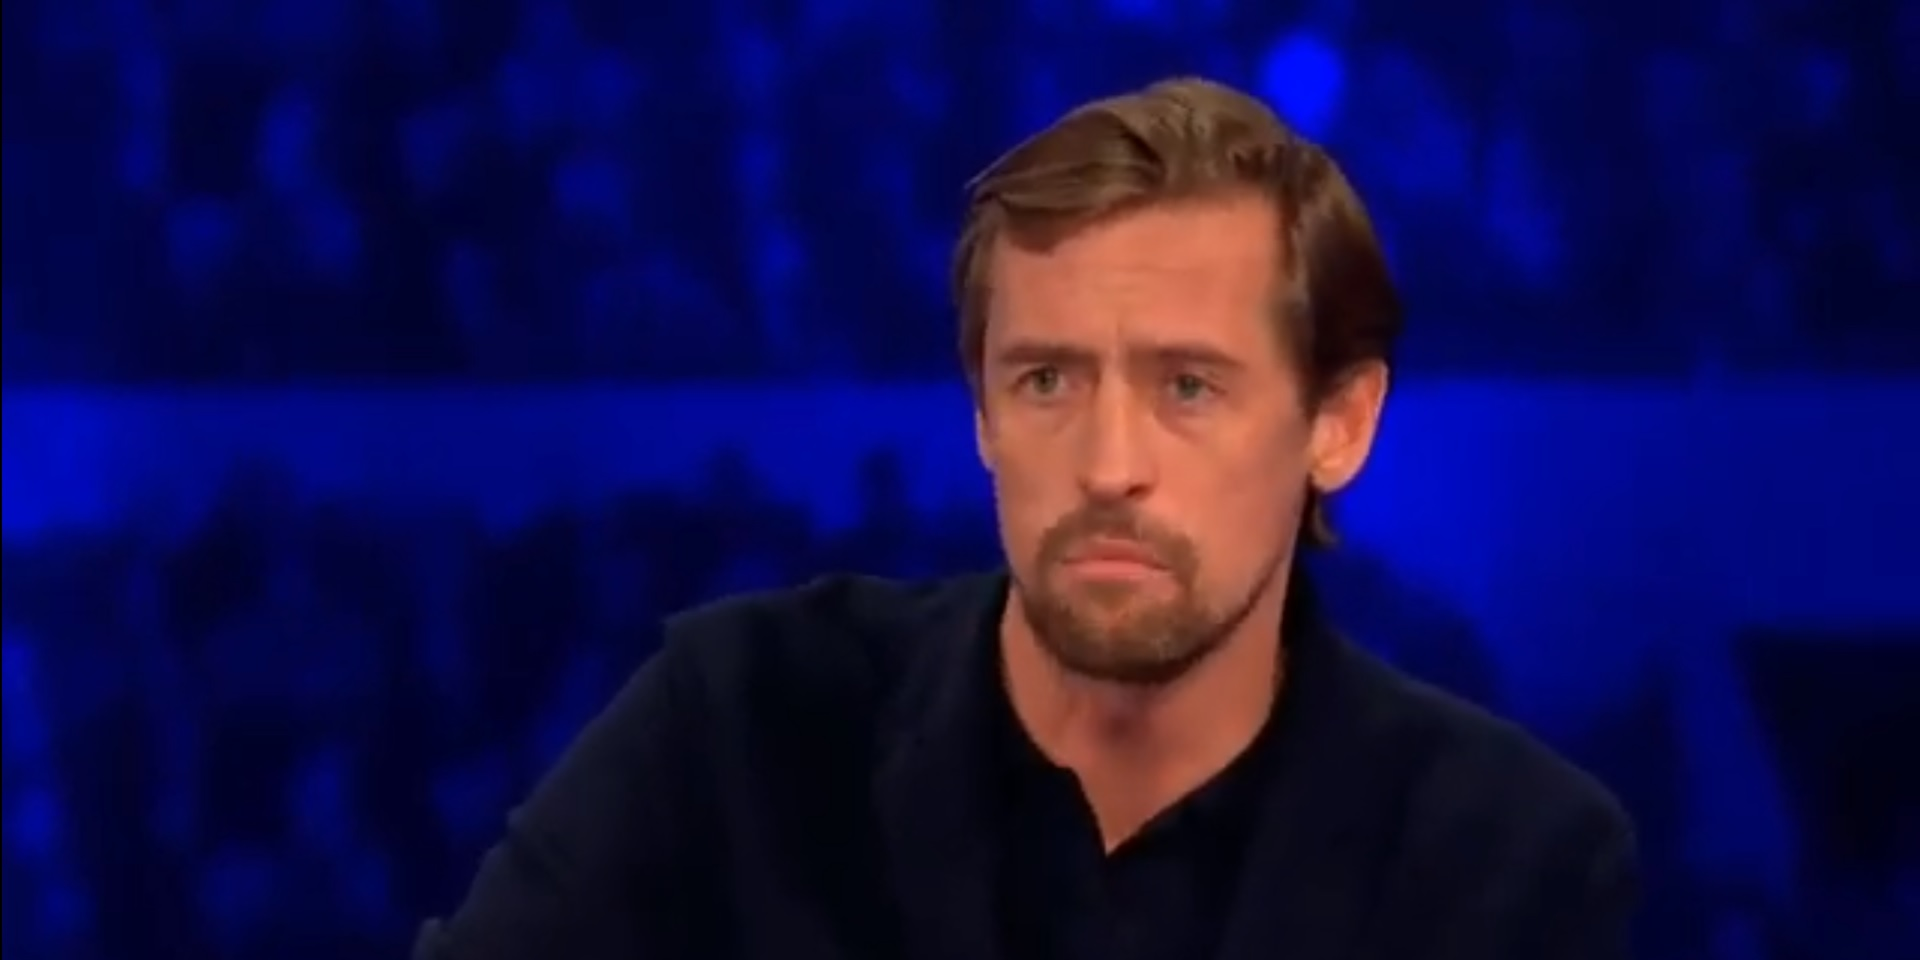 (Video) 'They were superhuman last year, we're seeing a human side to them' – Crouch identifies source of LFC struggles